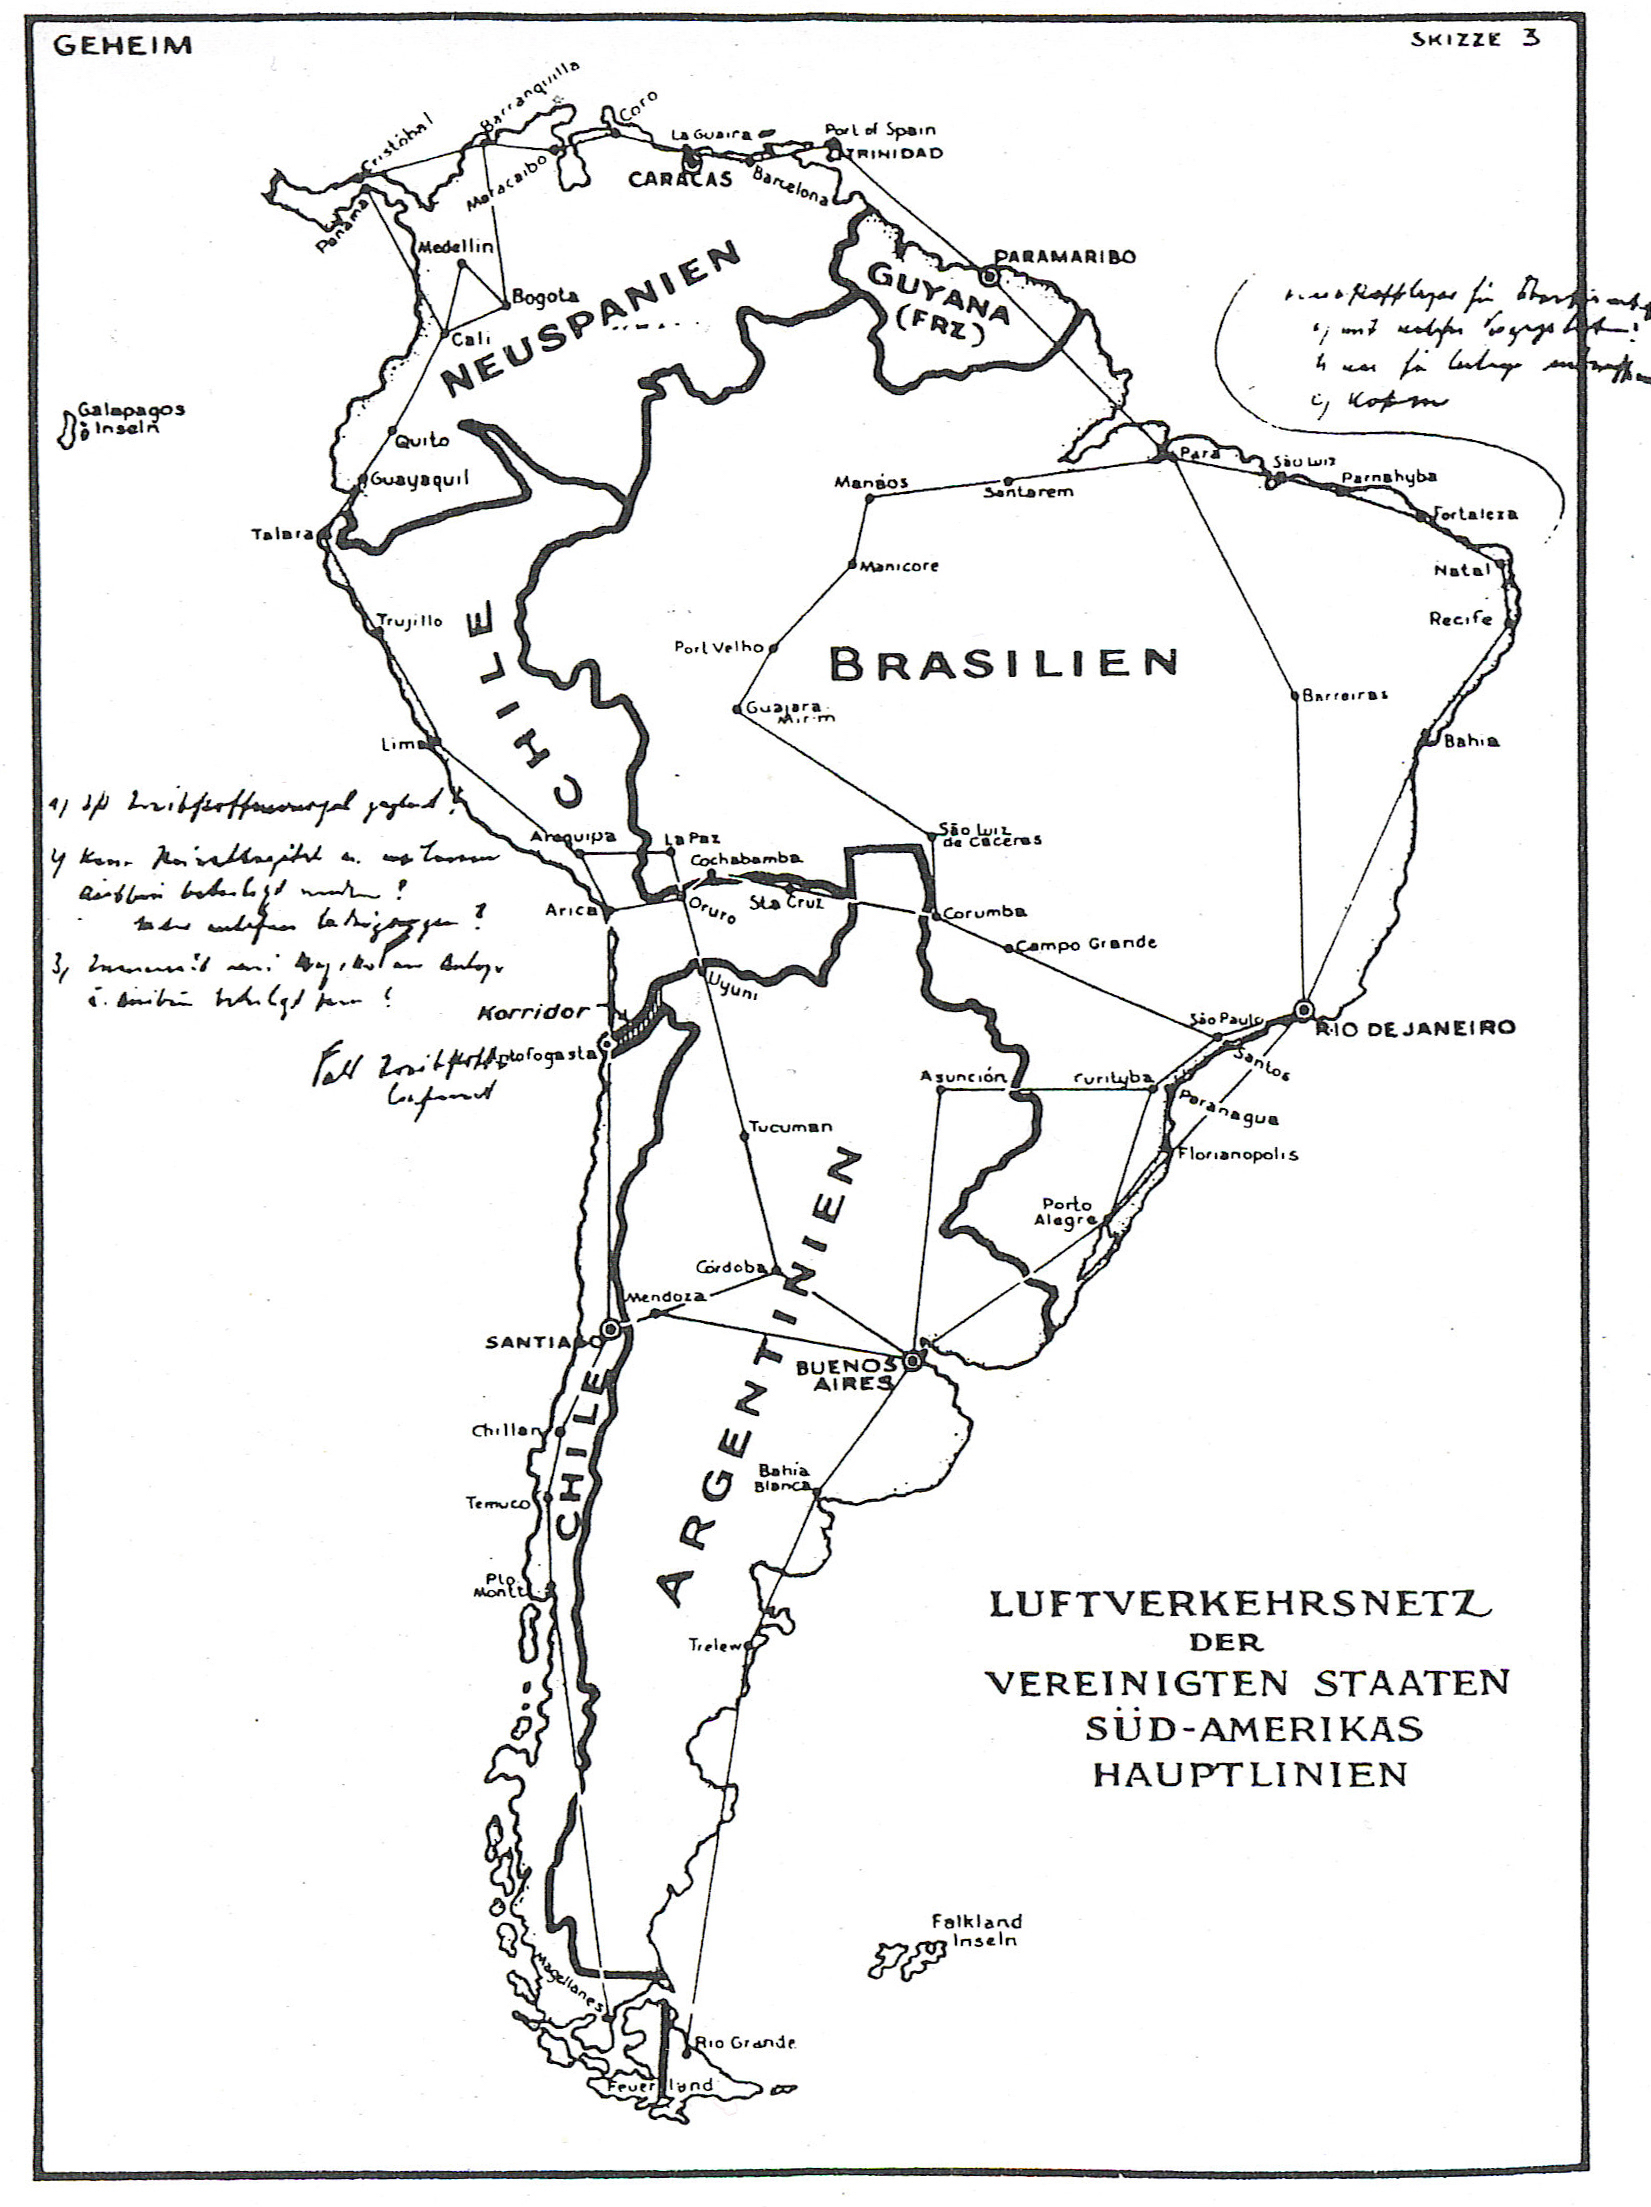 A Map of Nazi South America Forged by the British Big Think